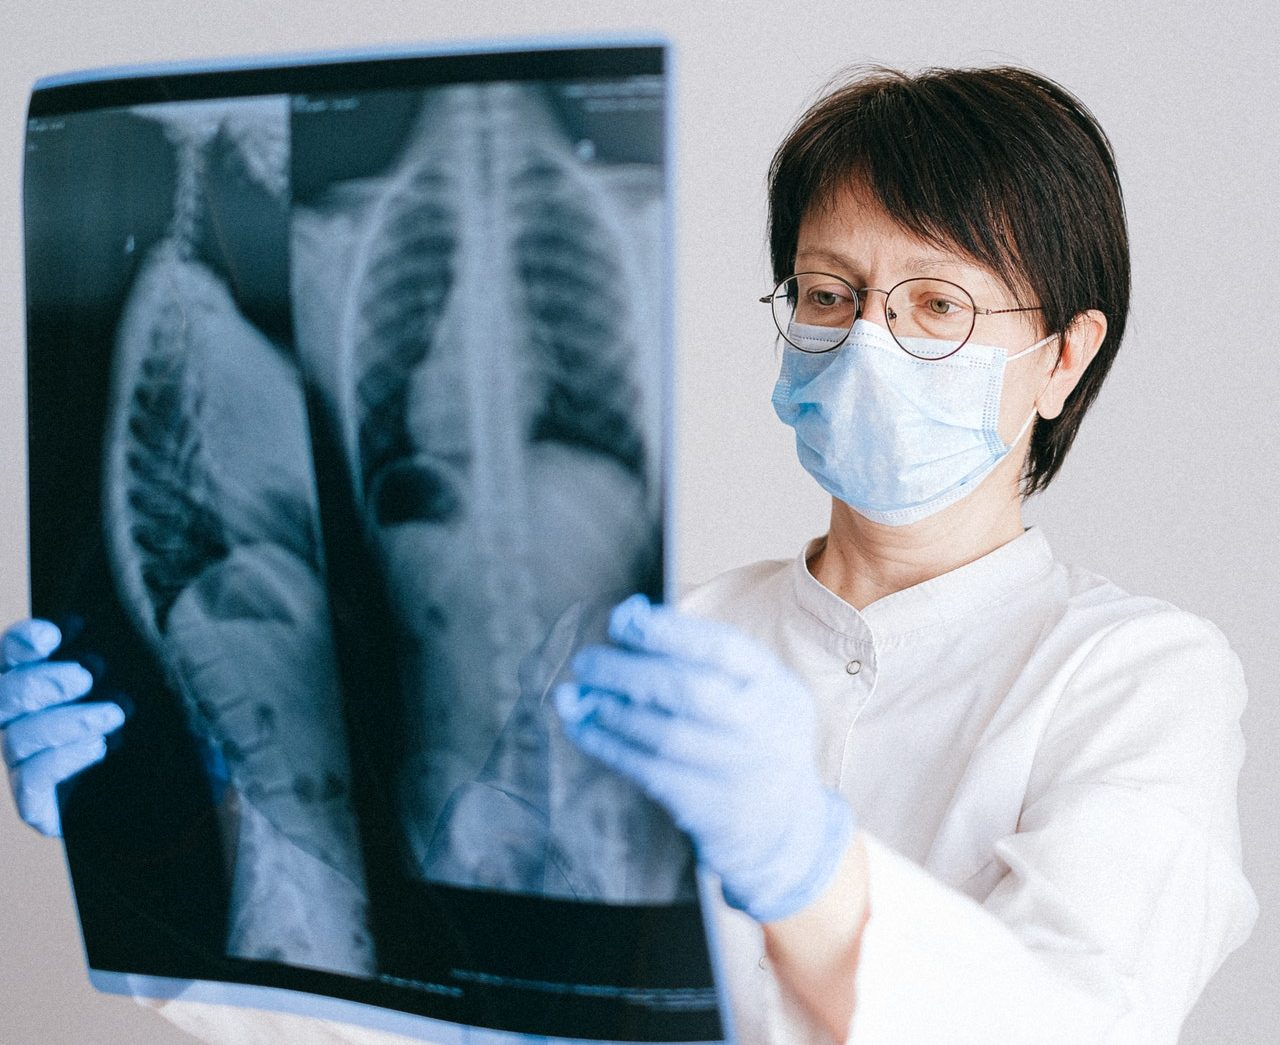 A doctor holding an X-ray of the lungs